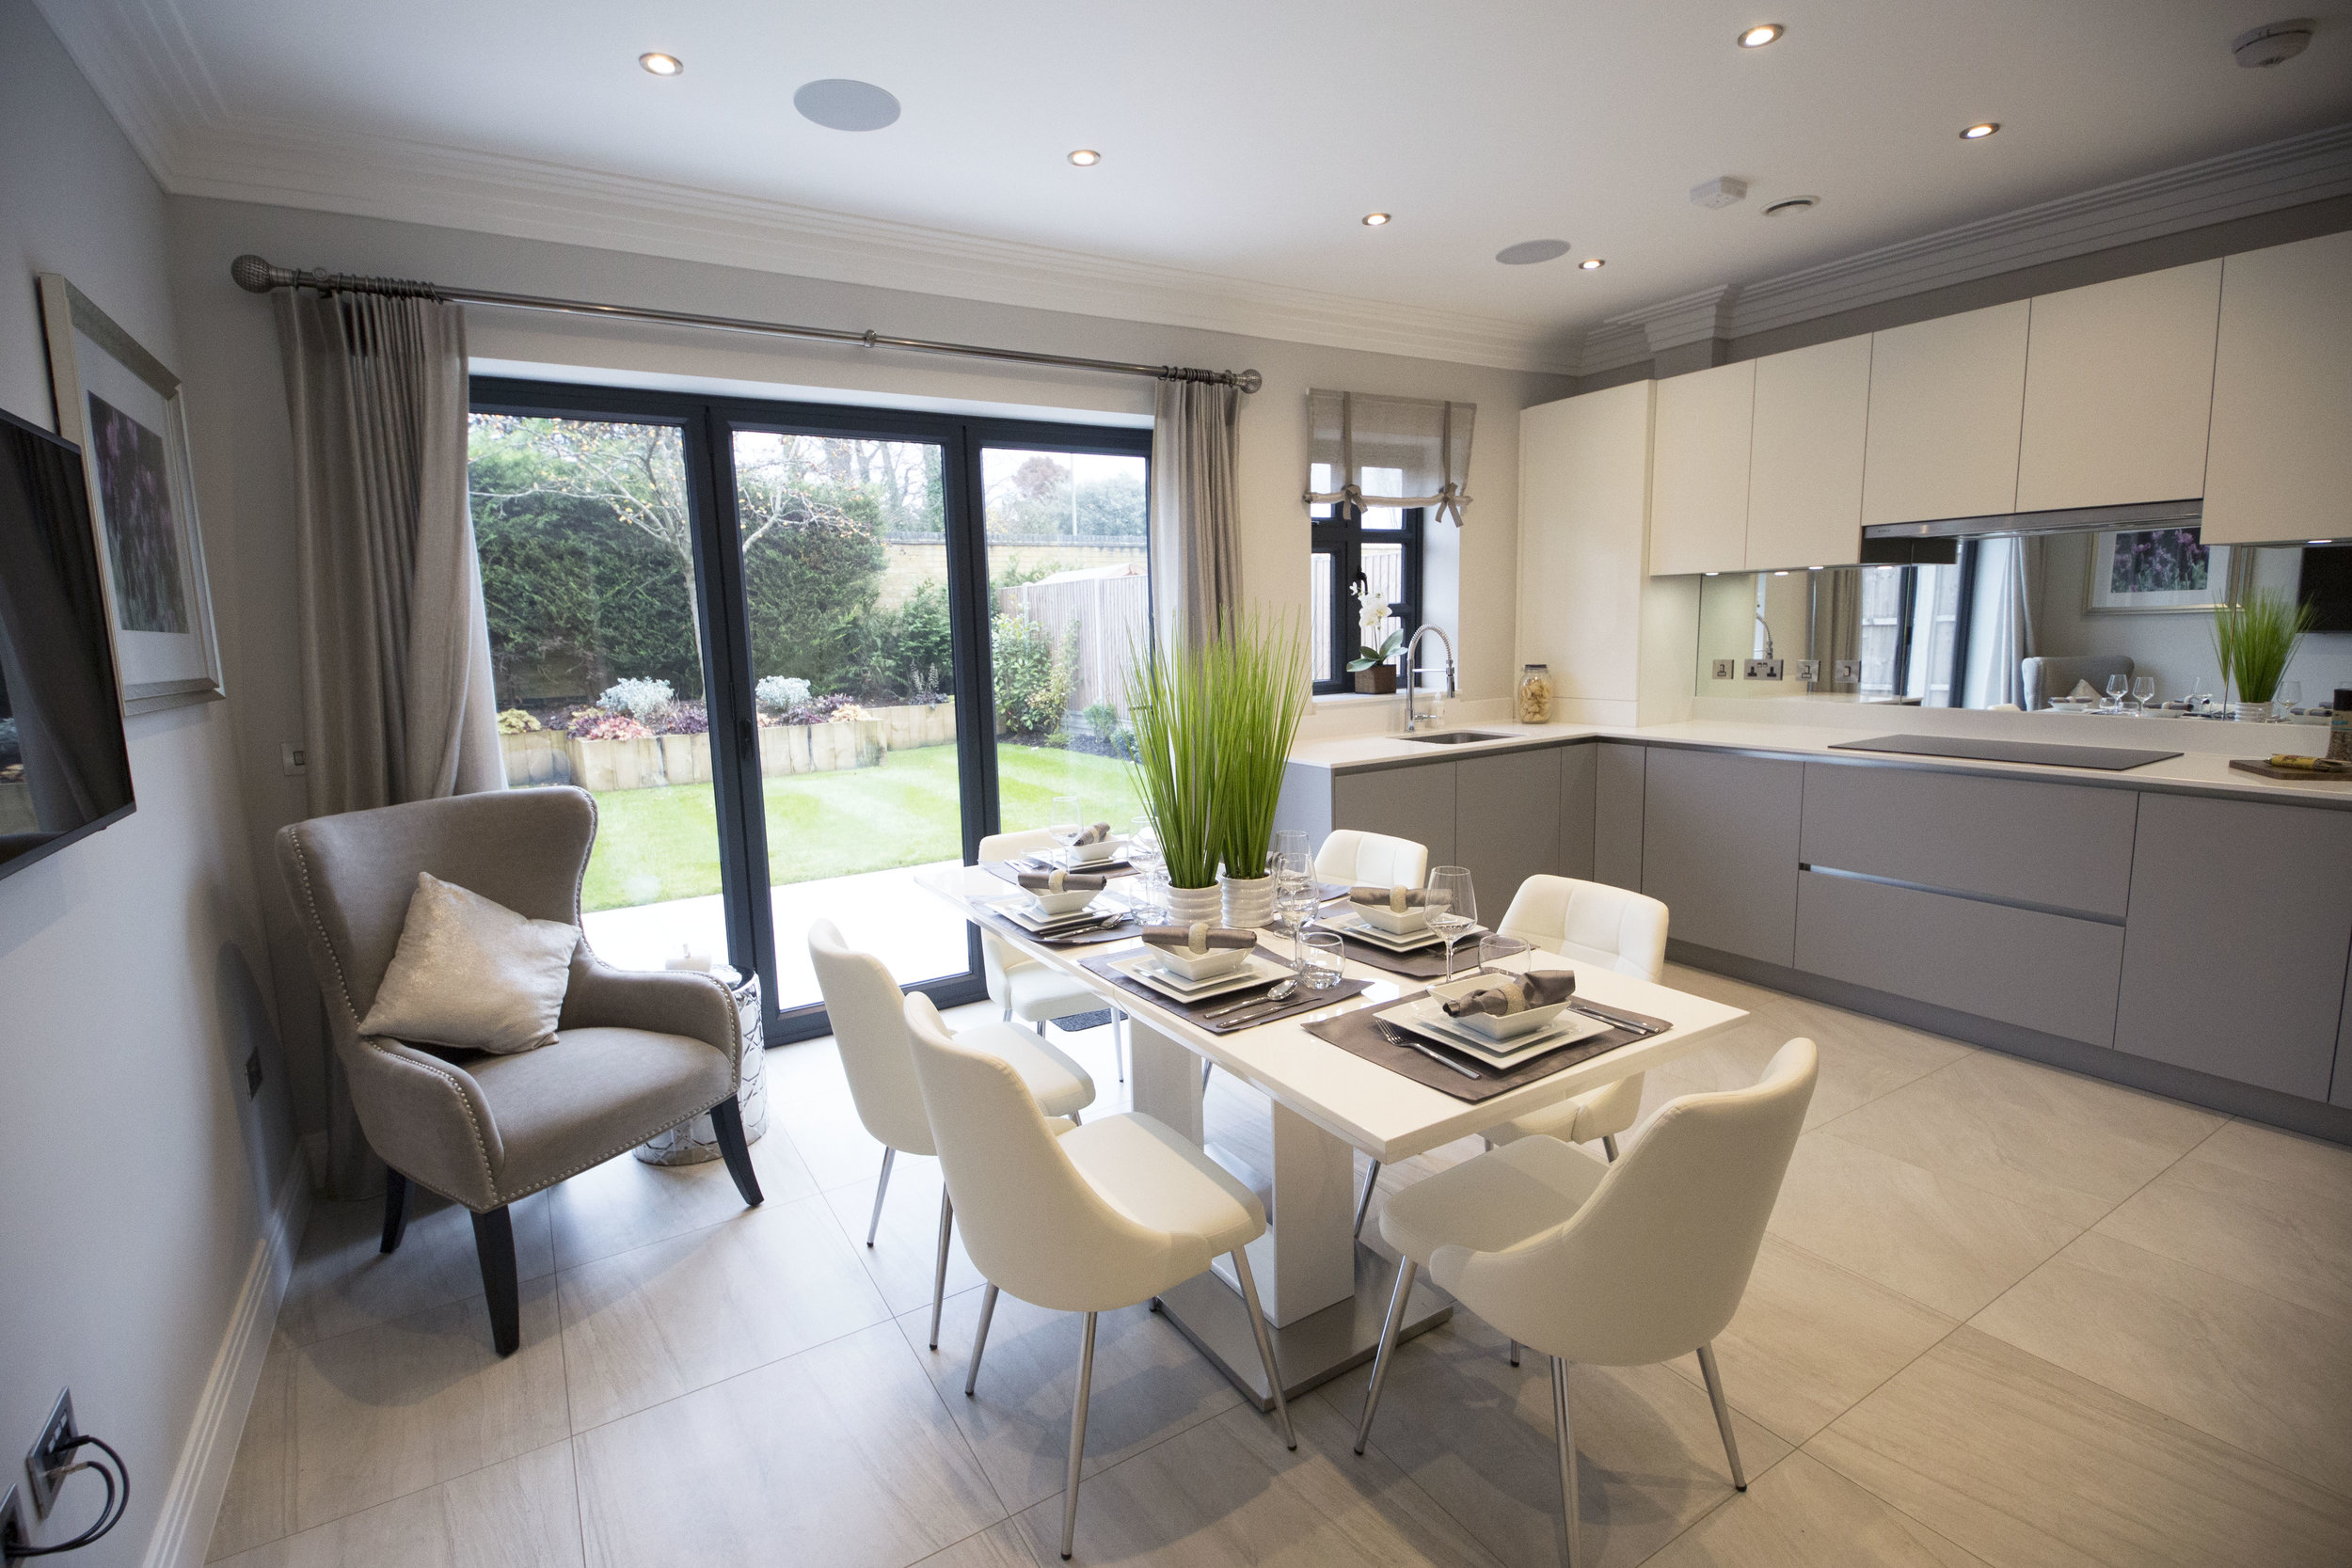 Finchley, N2 - A development of 8 new build houses in Finchley North London.